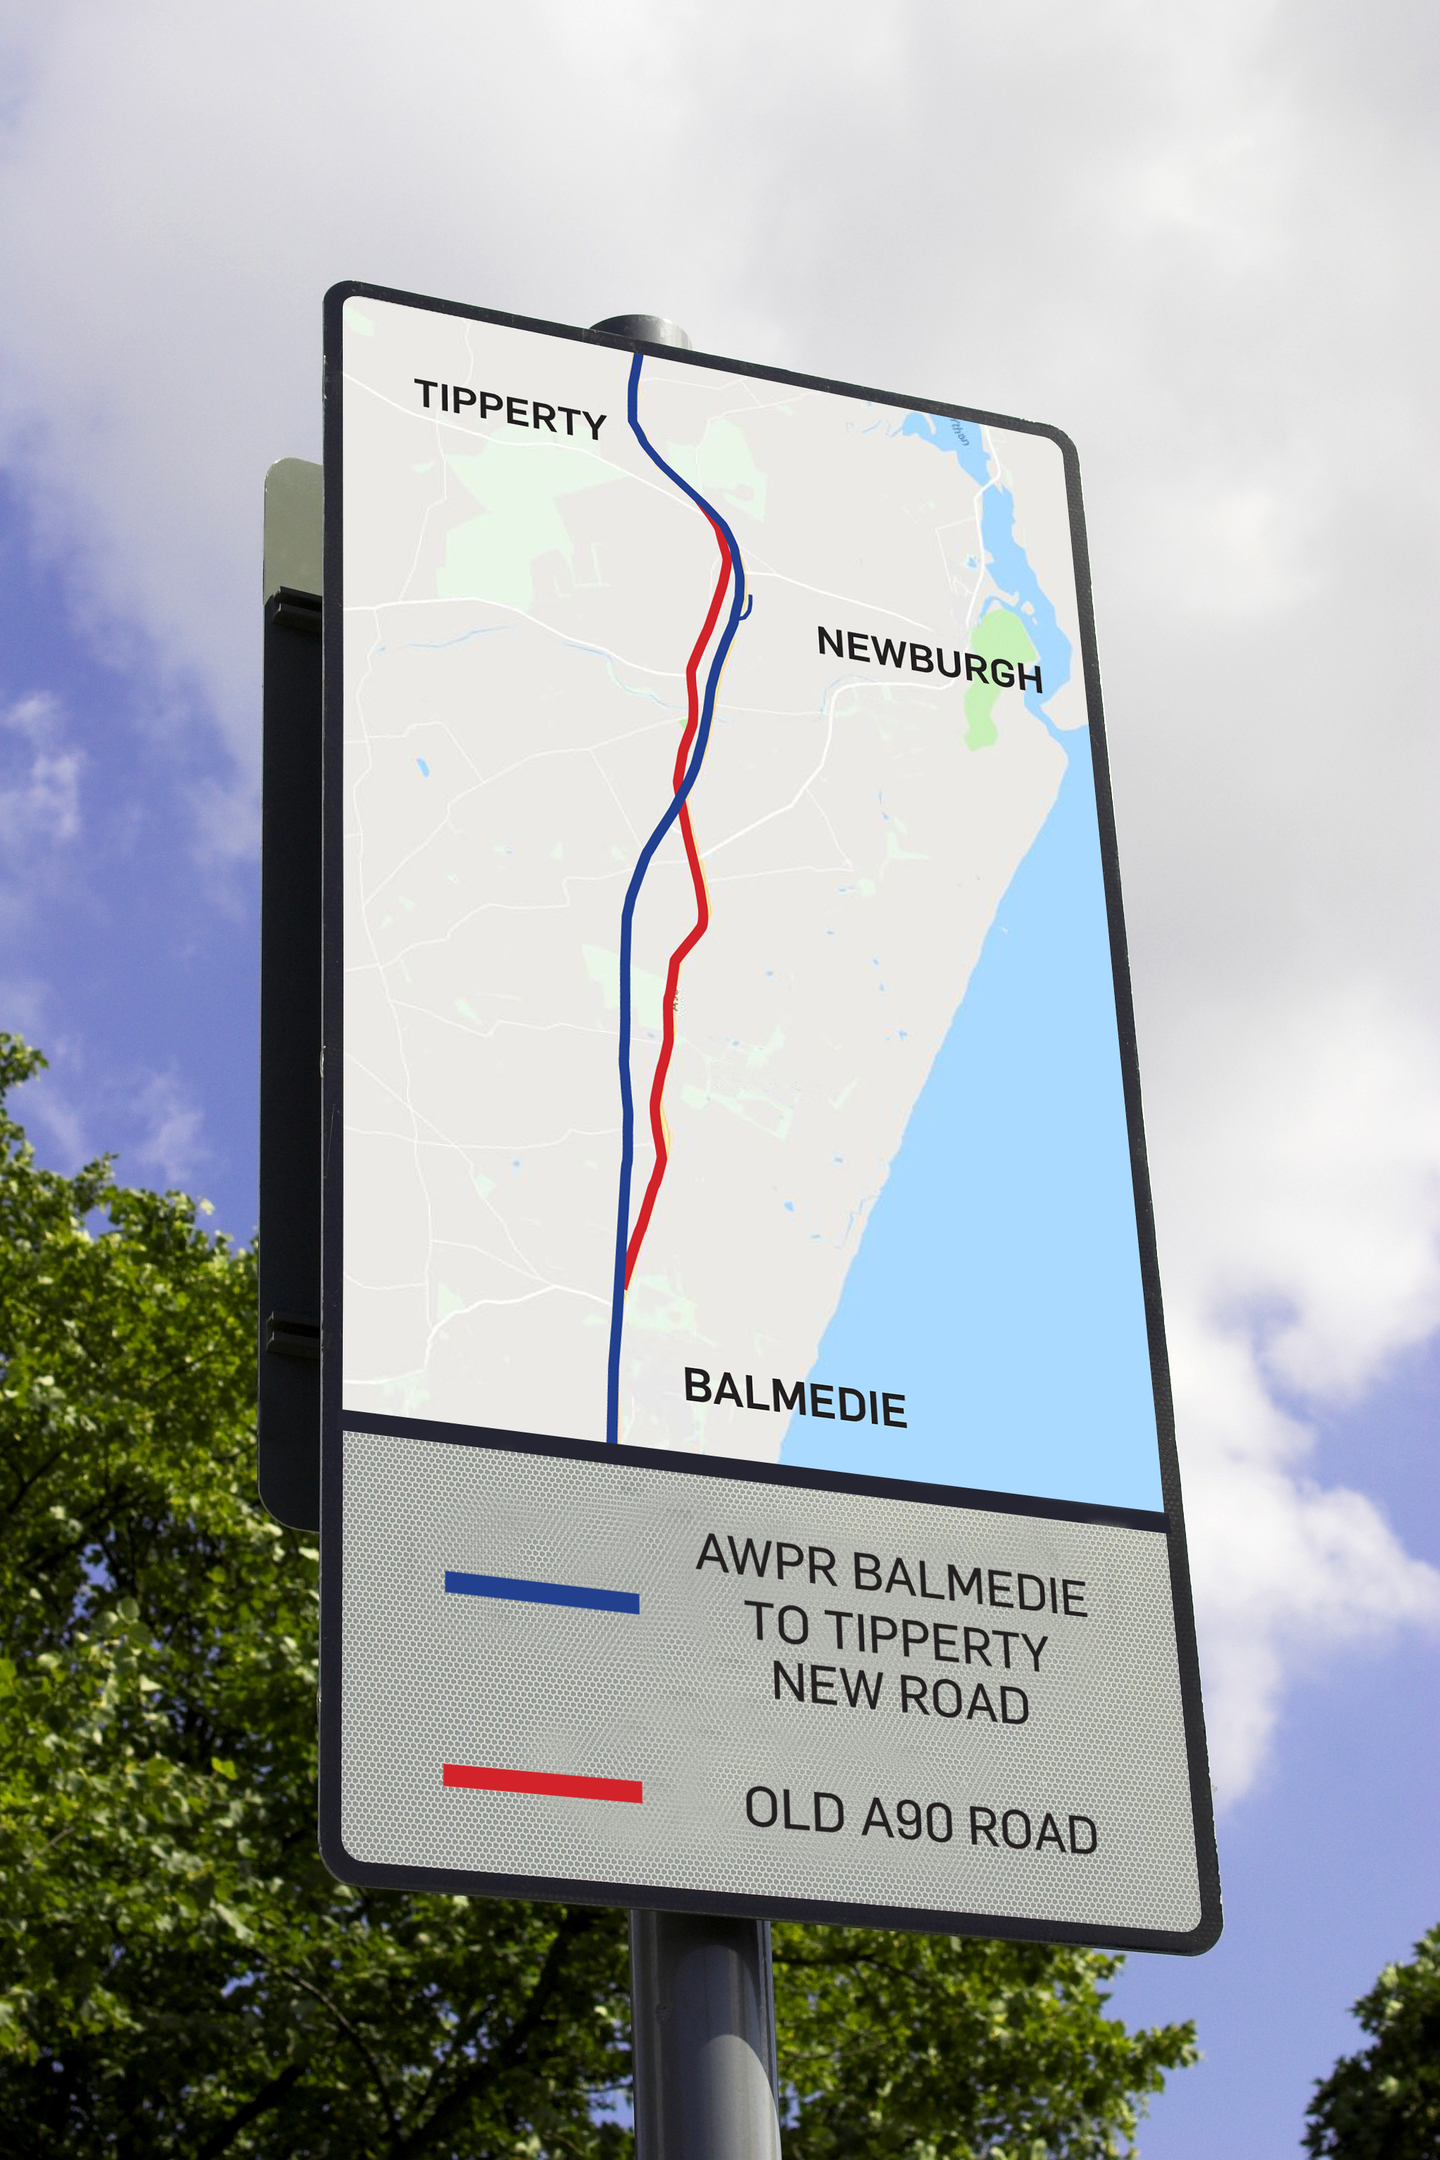 From Monday traffic will use the northbound dual carriageway of the new road between Balmedie and Tipperty